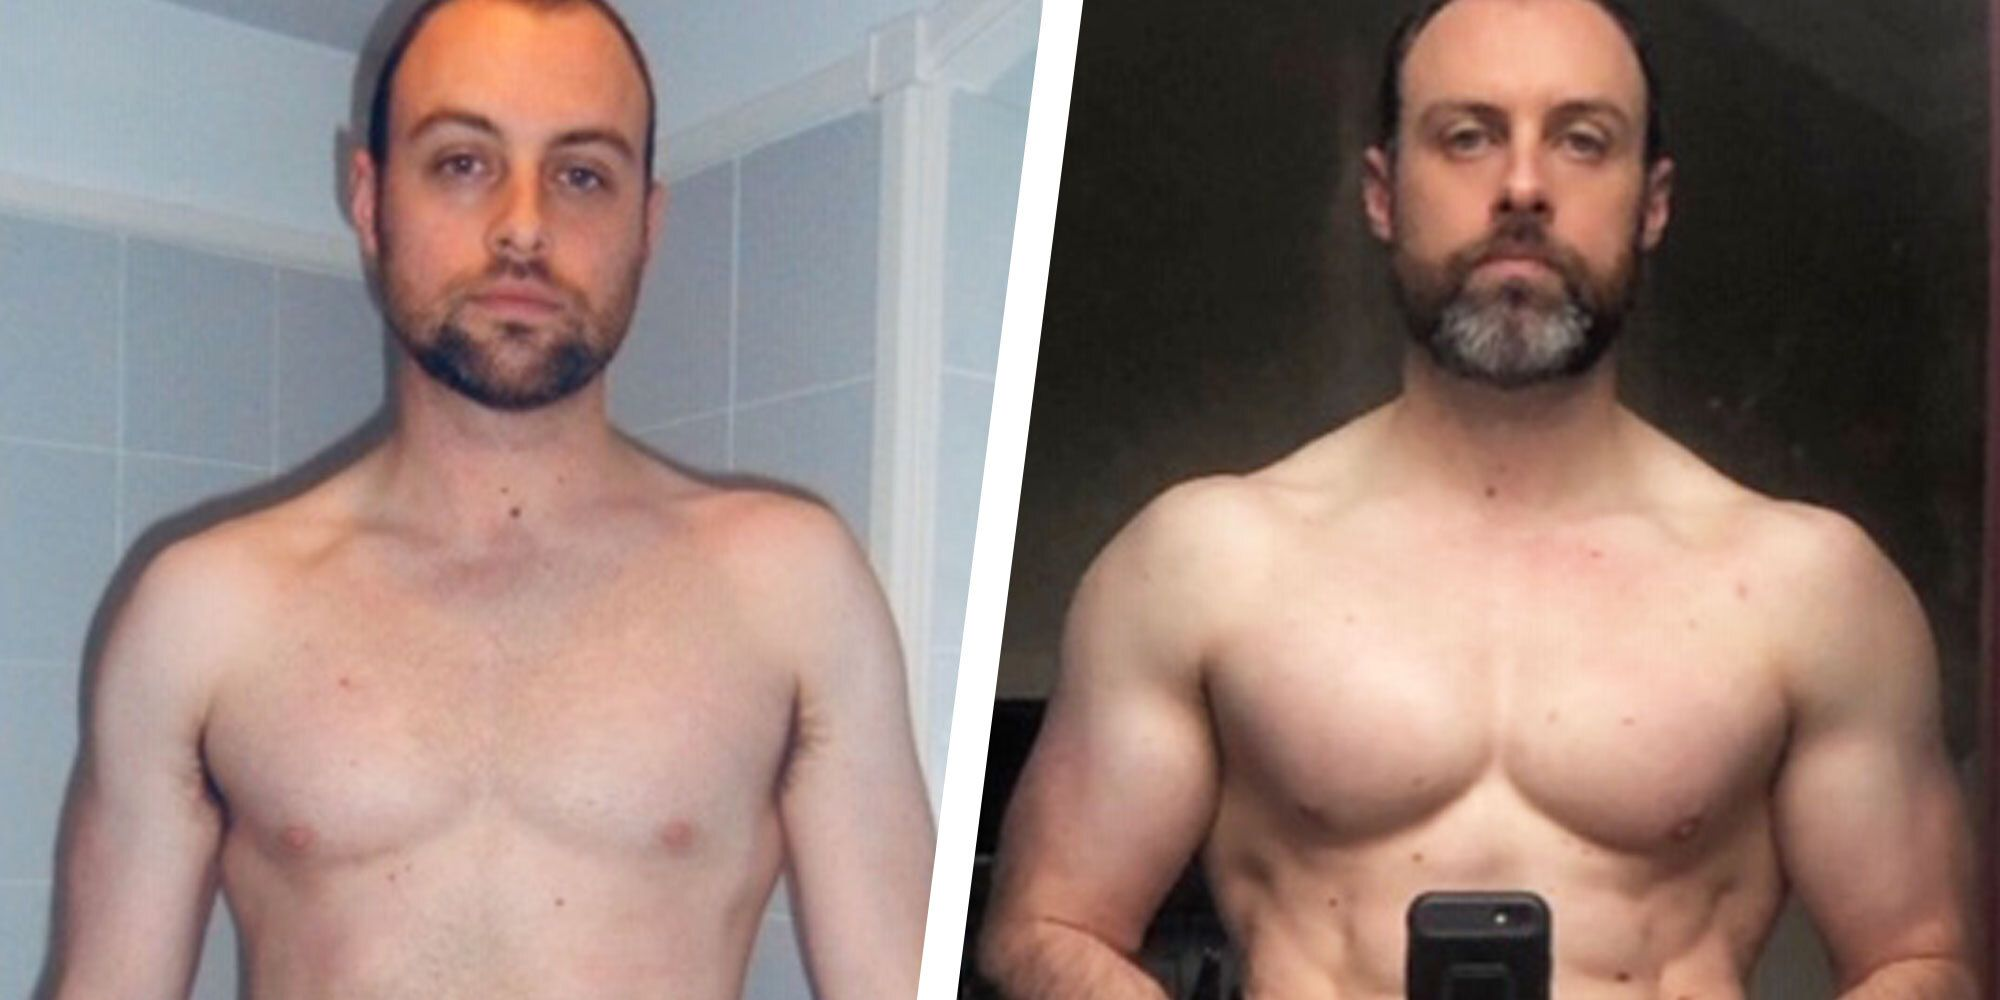 A Balanced Diet and Simple Workout Plan Helped Me Build Muscle and Get Ripped